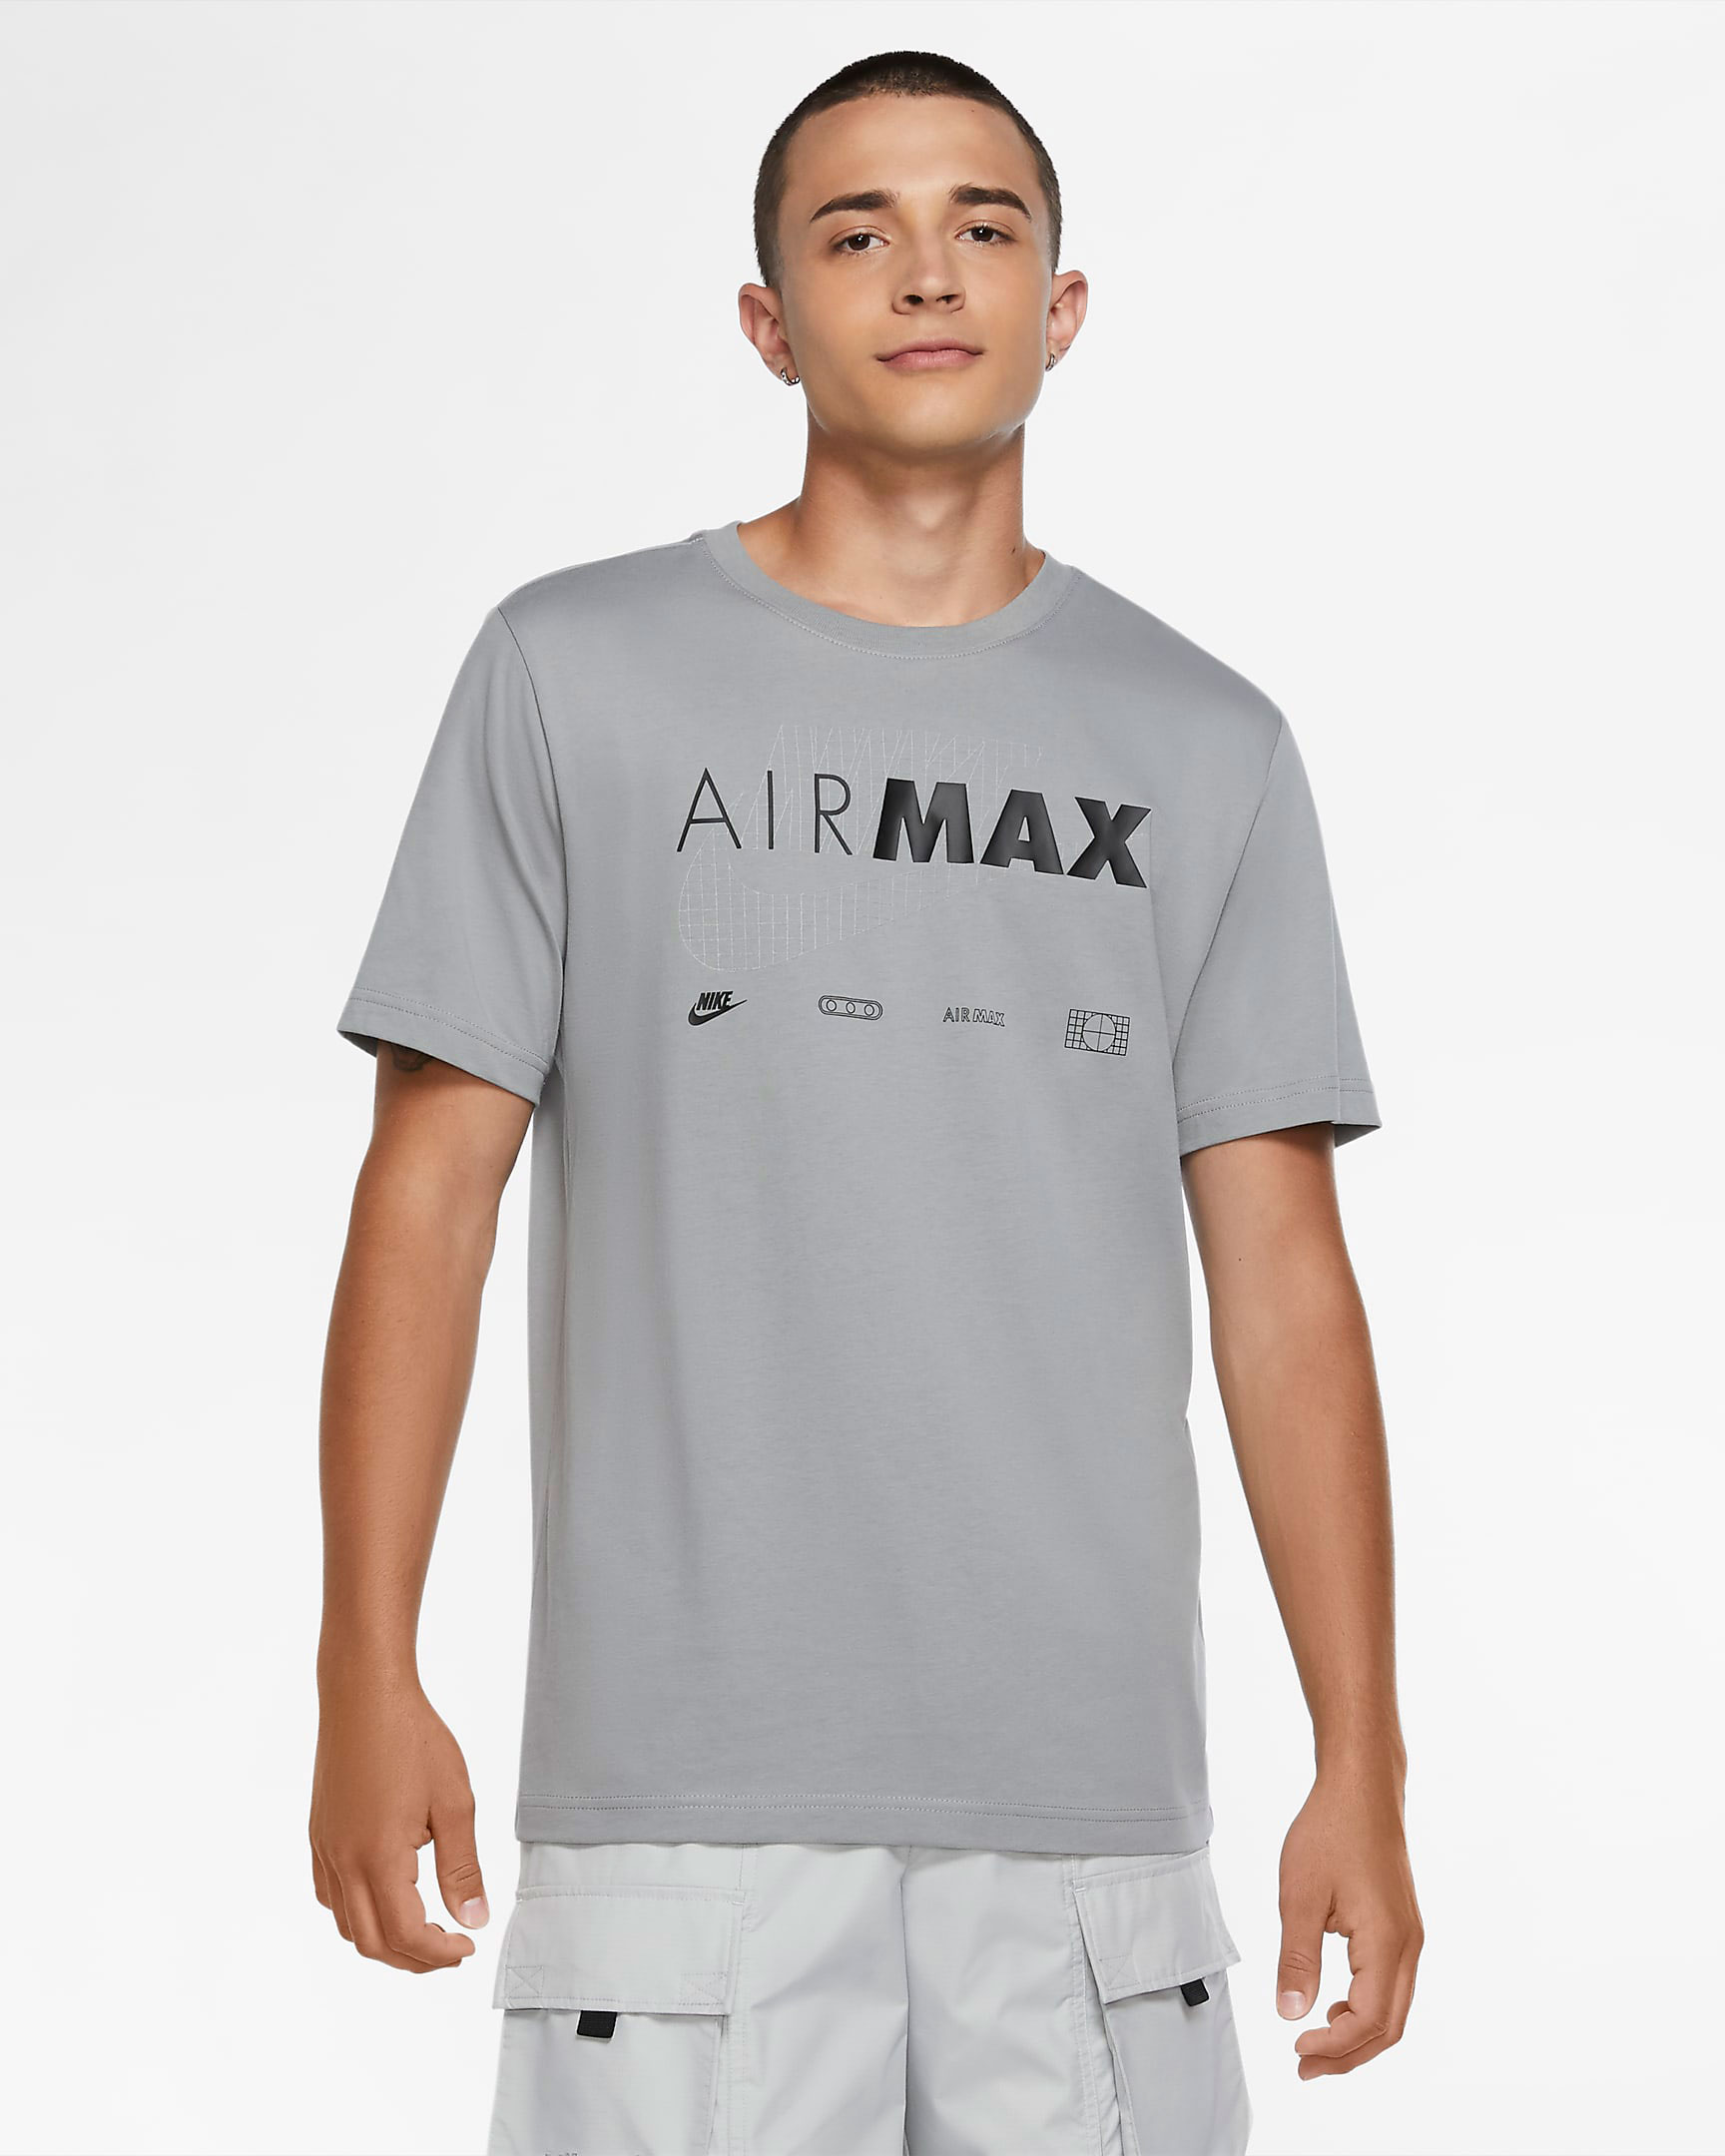 nike-air-max-shirt-grey-black